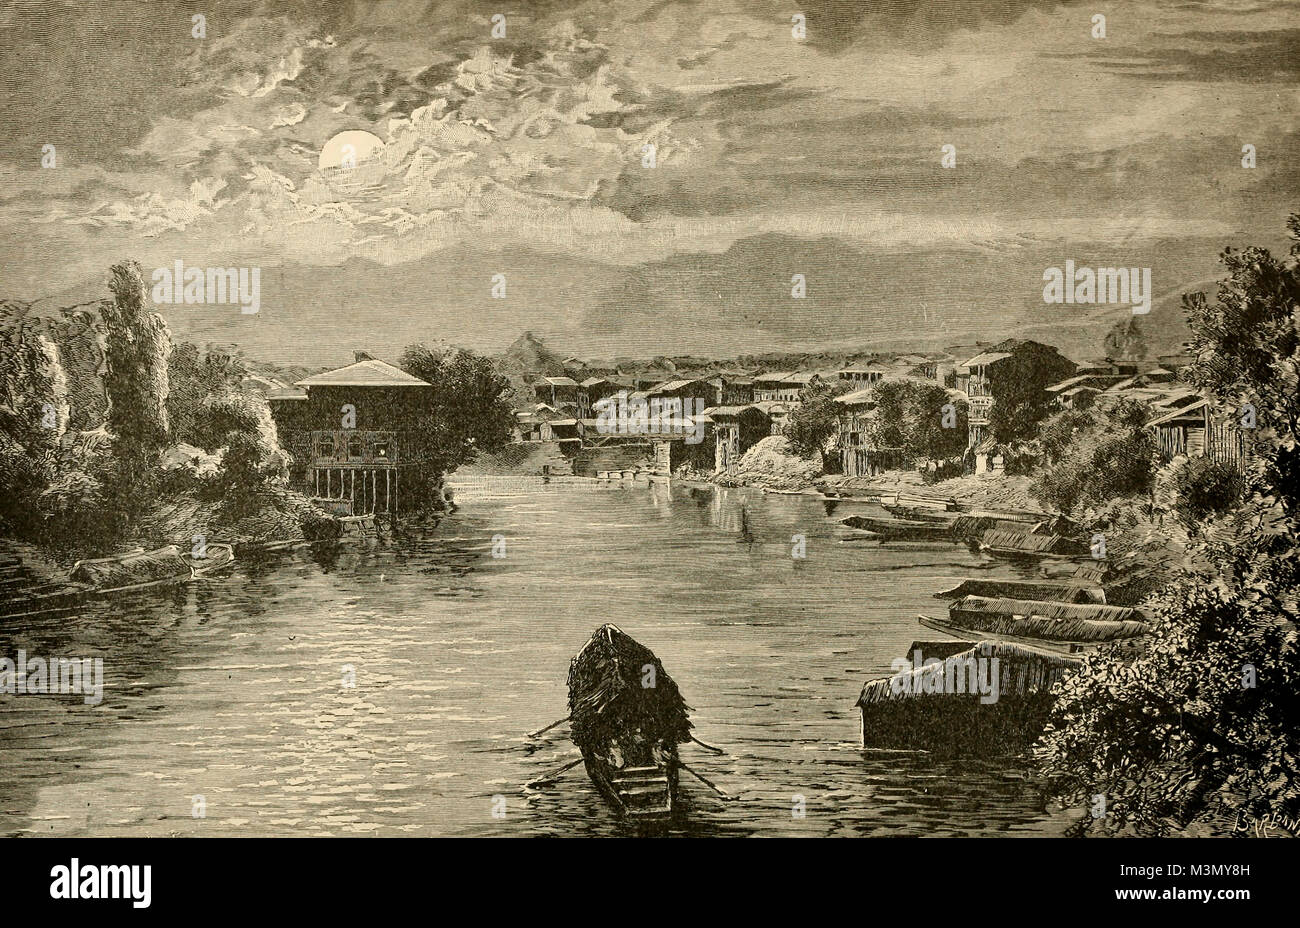 Boating by Moonlight on the Indus River, circa 1800 - Stock Image